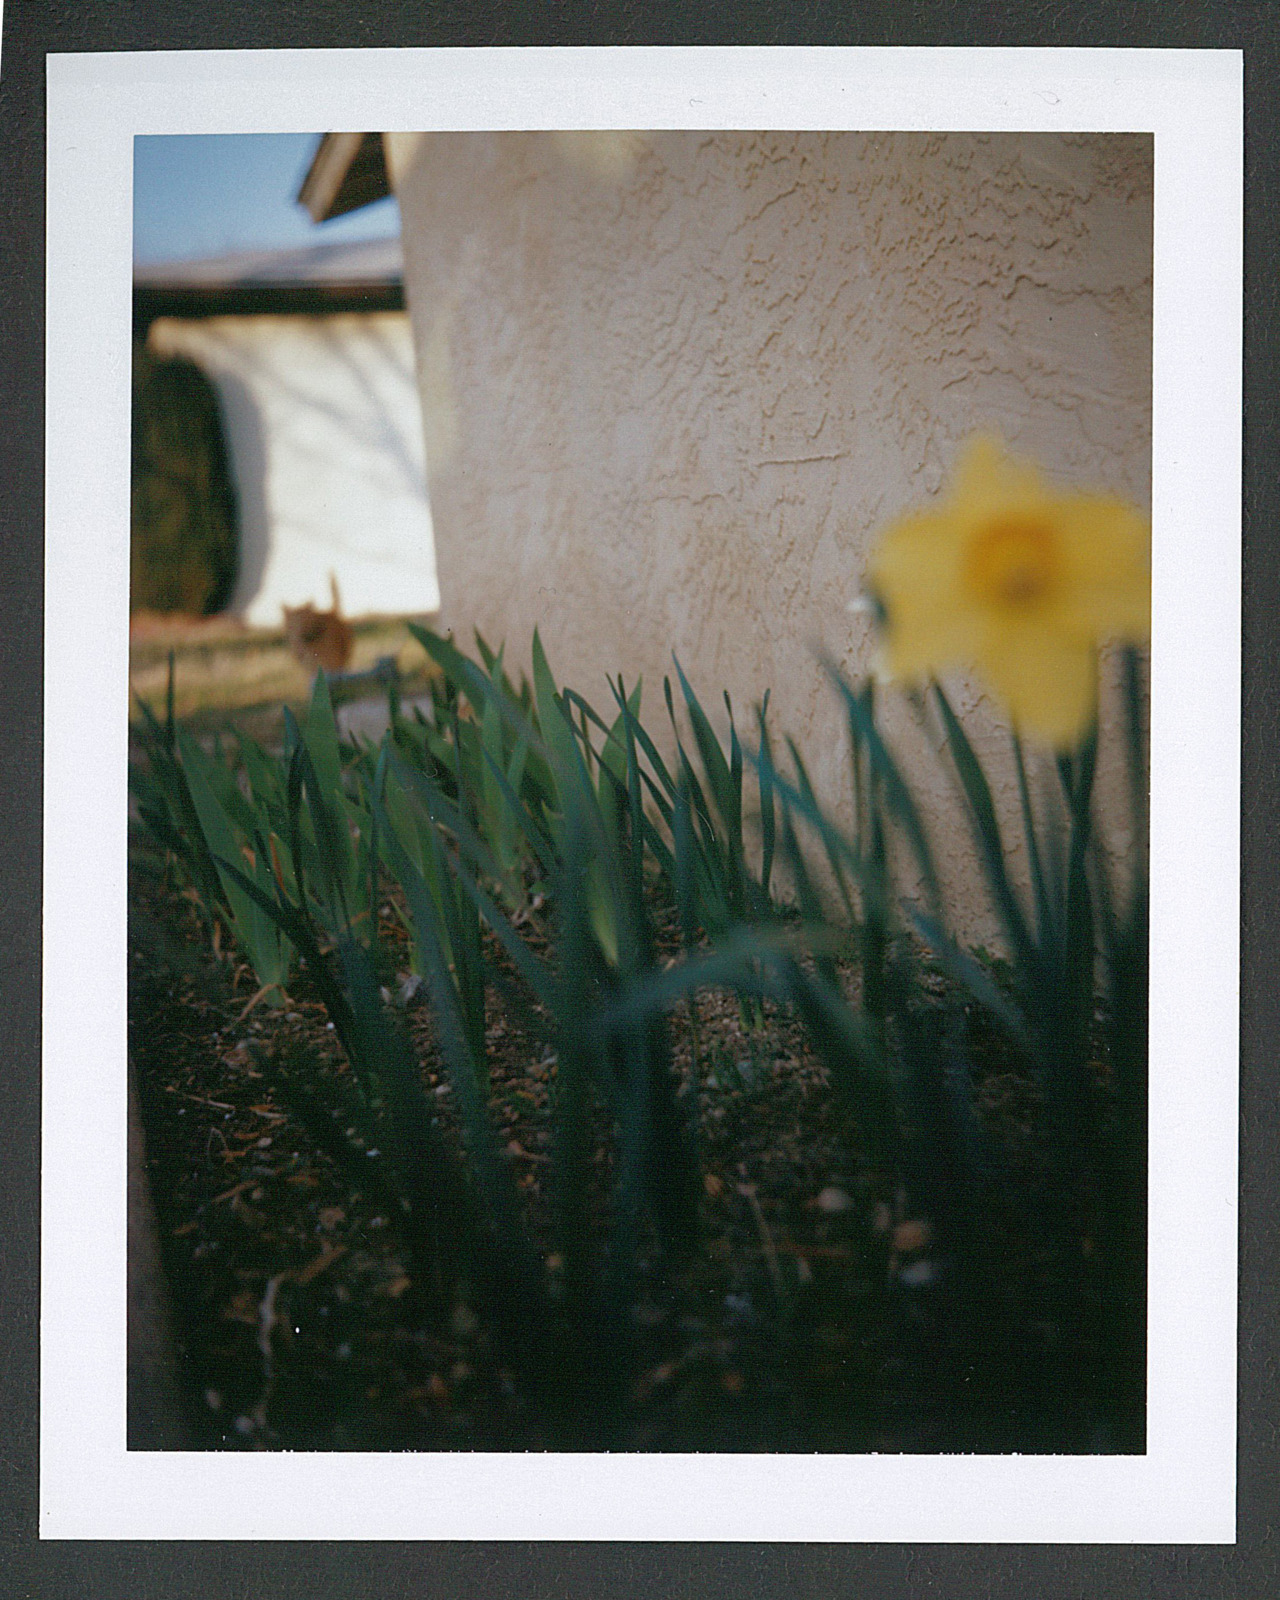 Polaroid color test #4 - loosing focus.